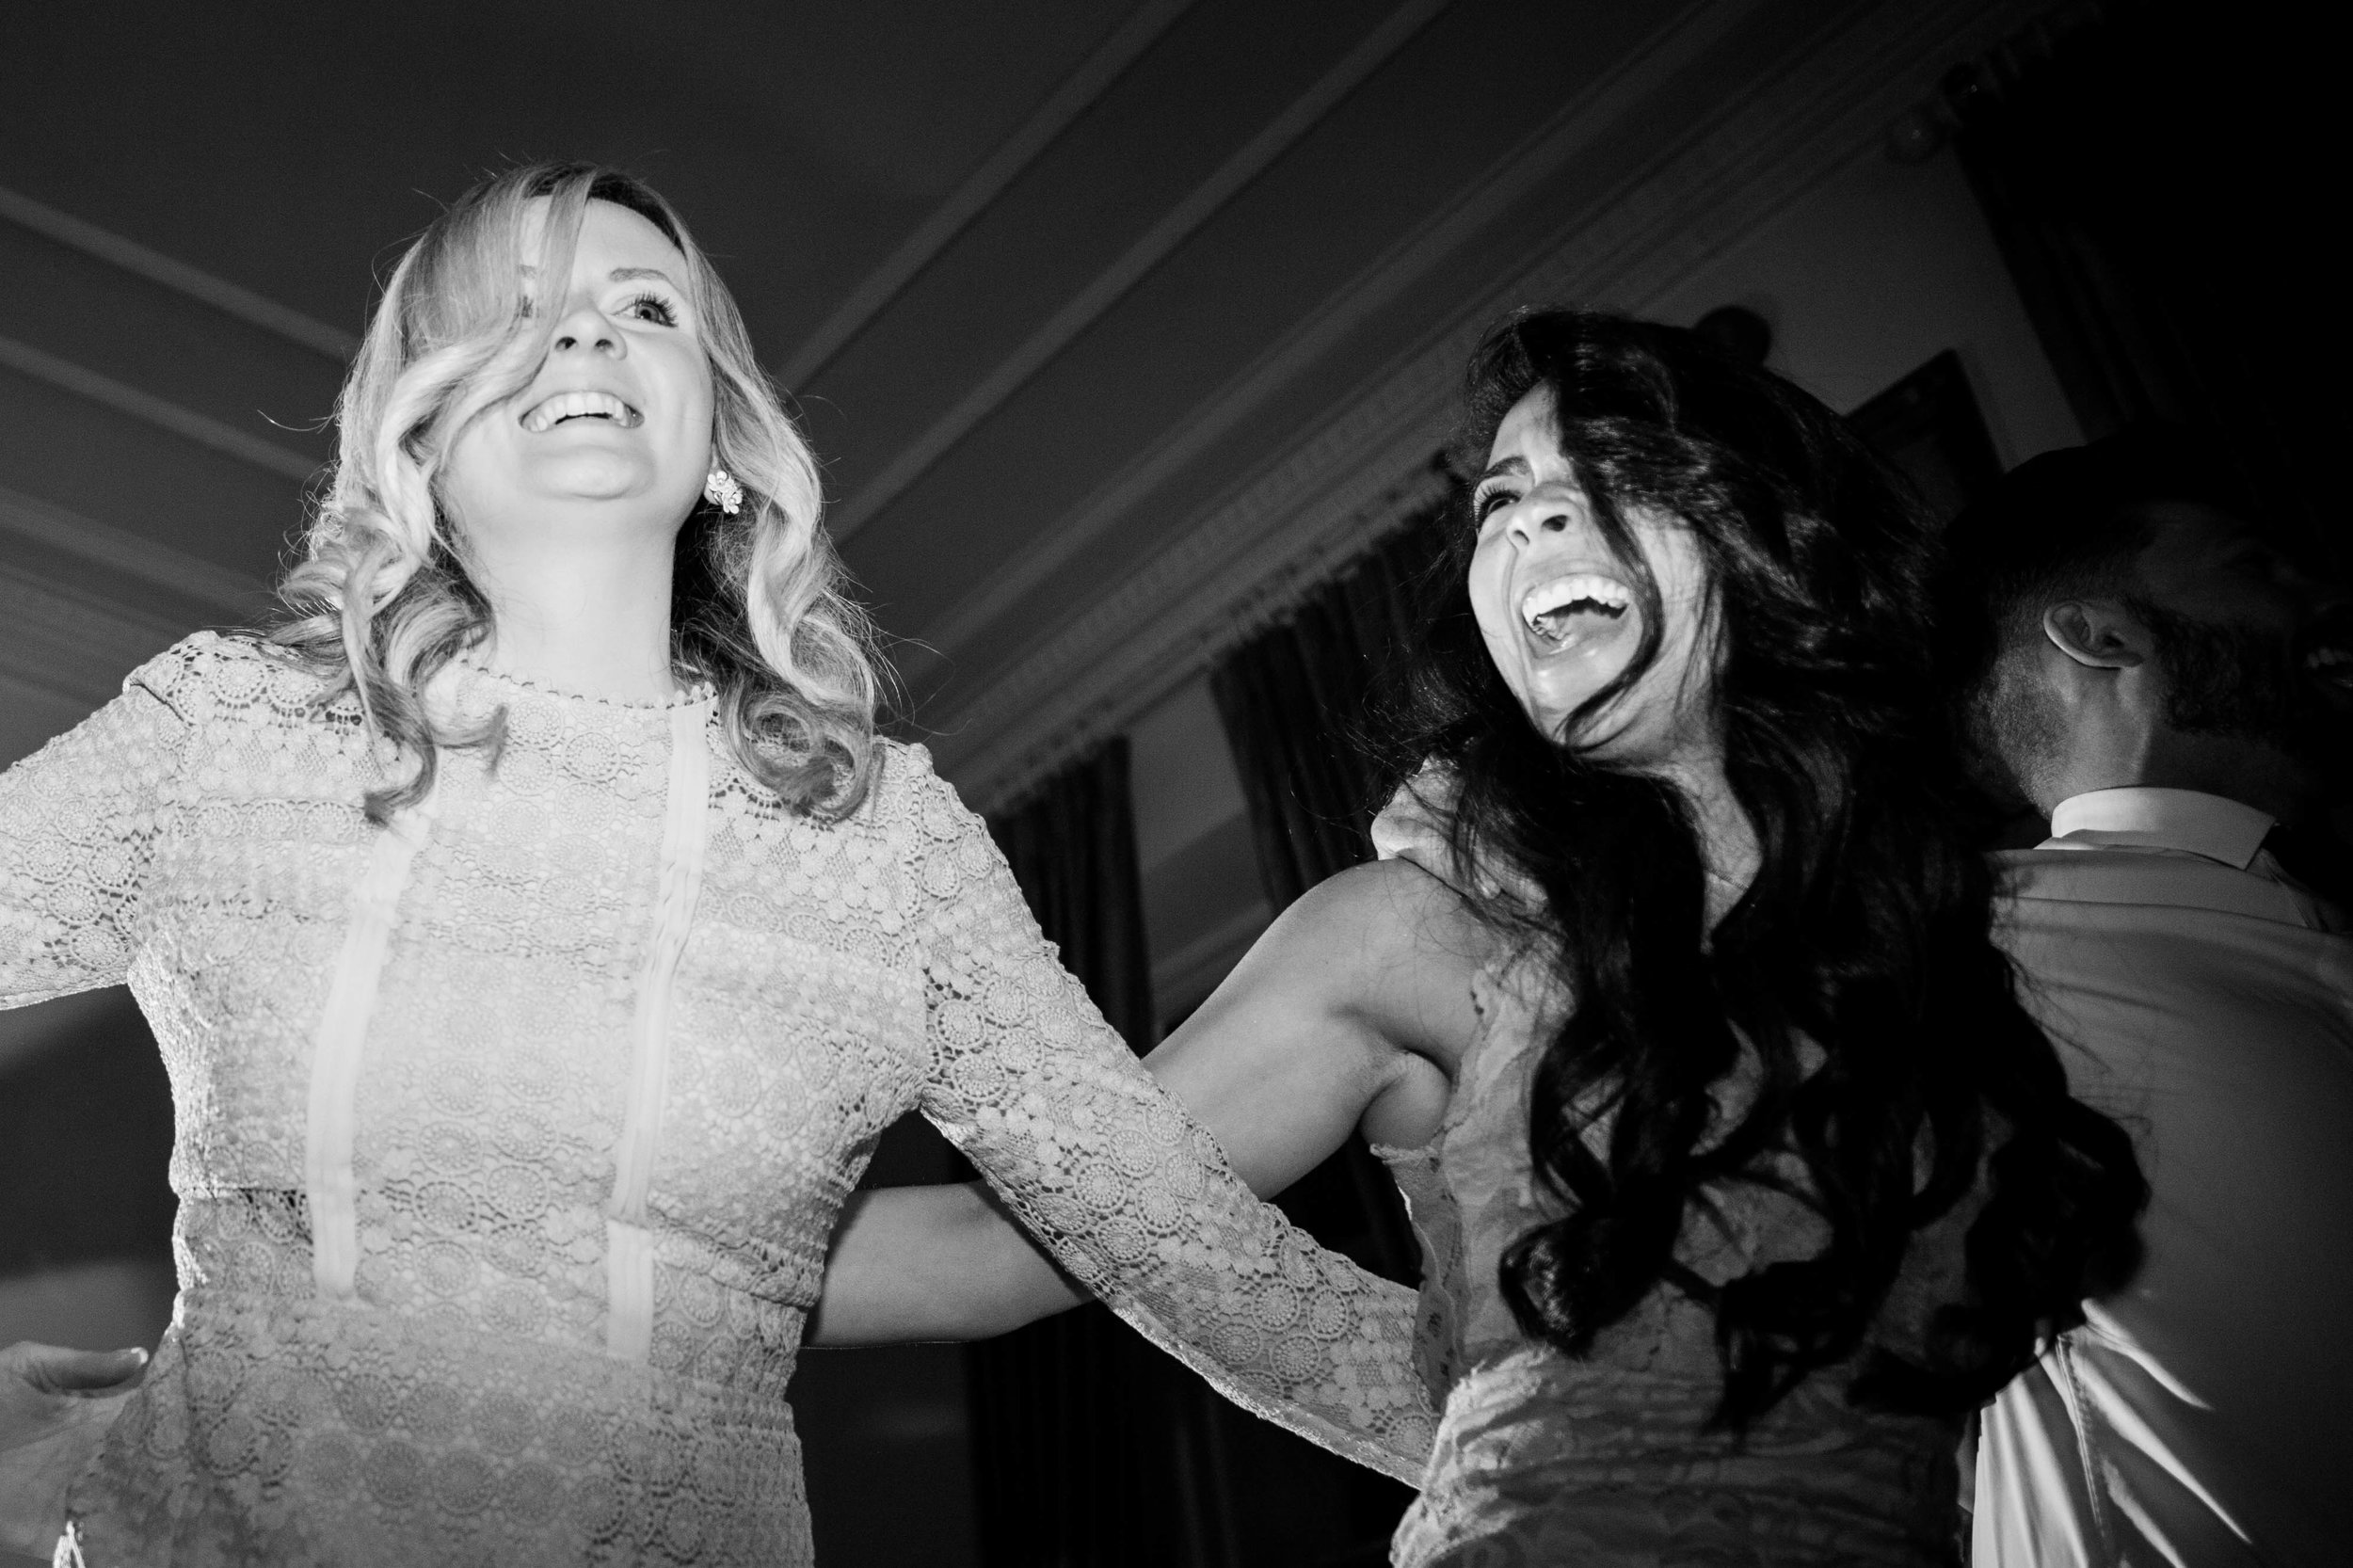 NLPhotography_Taplow_House-Wedding_Photographer_Emily&Alan_BnW-605.jpg